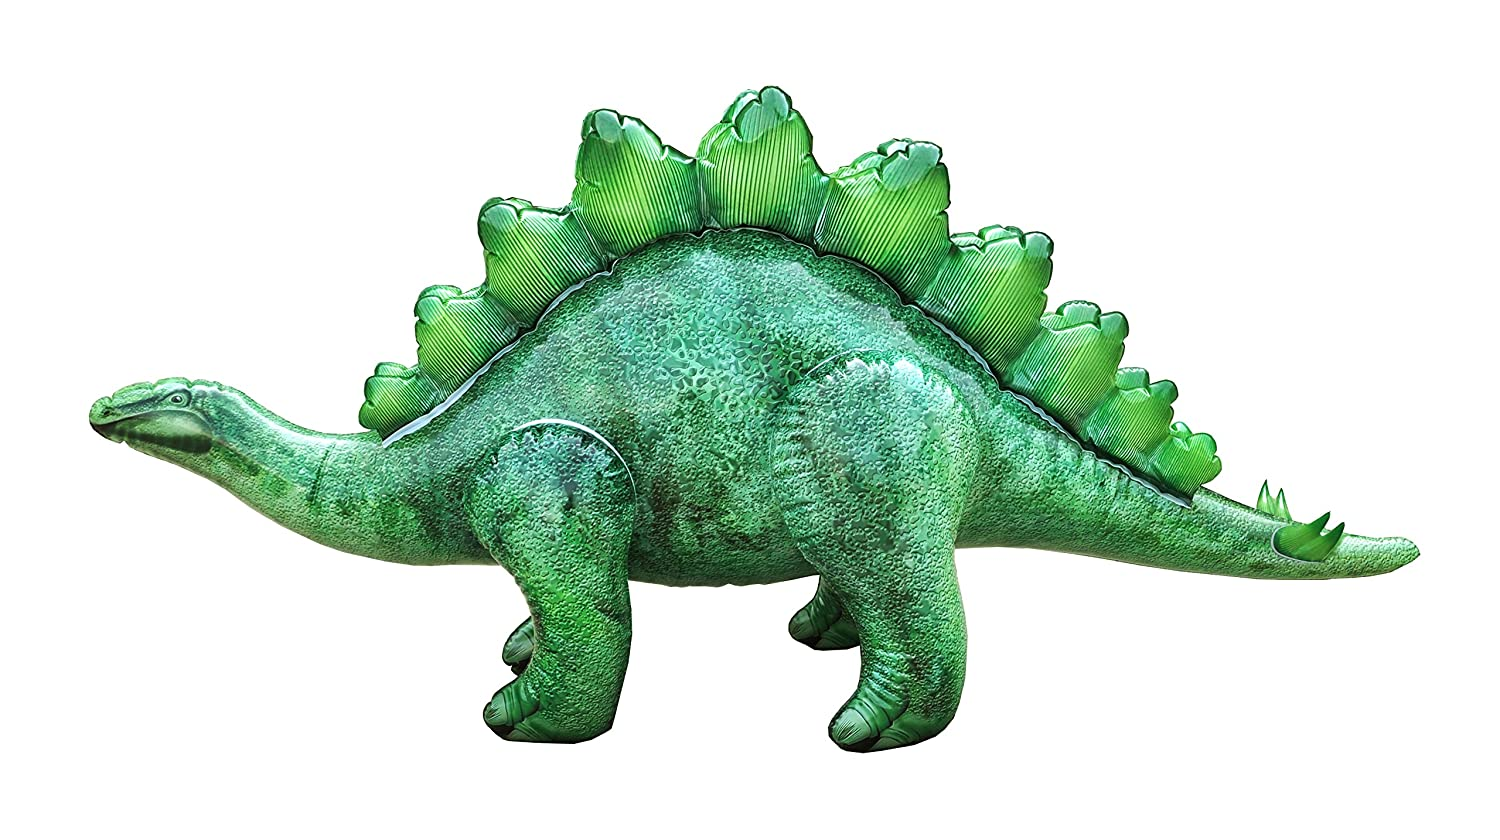 Jet Creations DI-STE8 Inflatable Stegosaurus Dinosaur 46 inch Long- Great for Pool, Party Decoration, Birthday for Kids and Adults